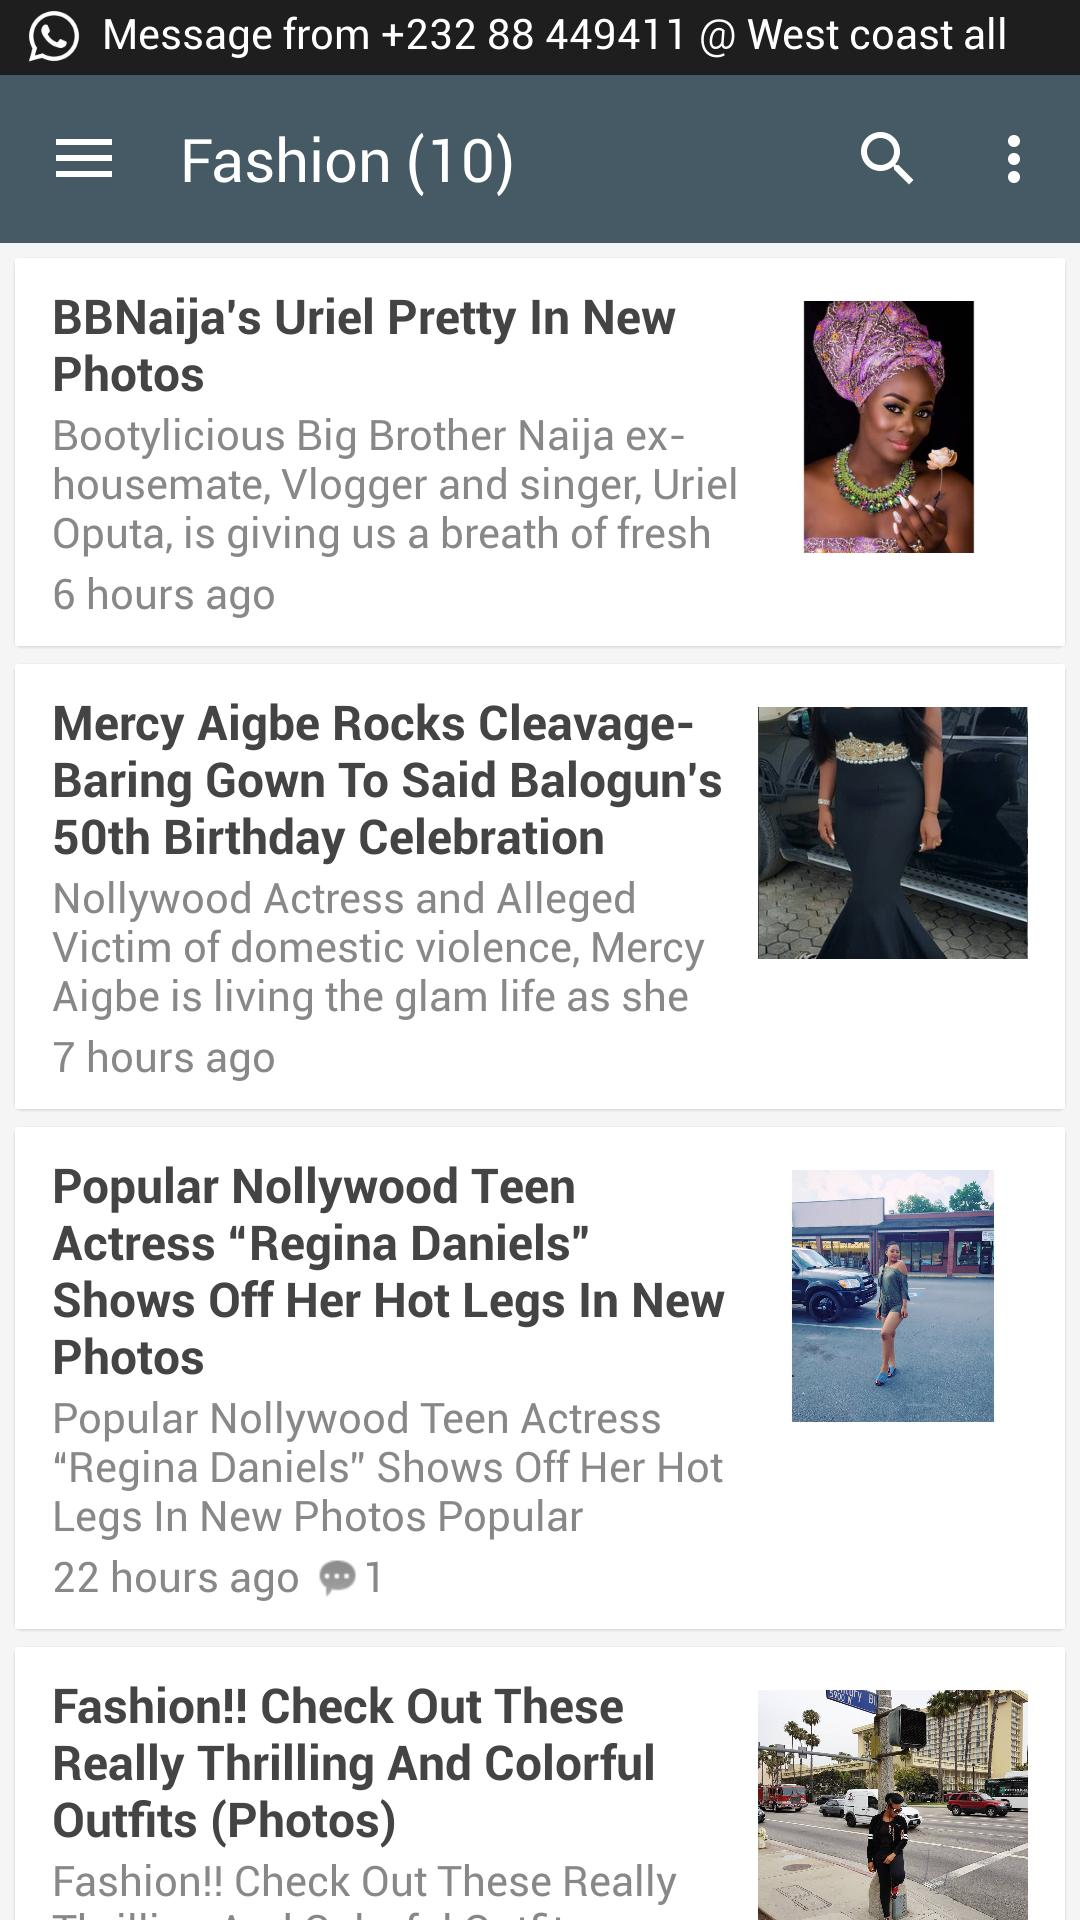 9jaflaver News App for Android - APK Download